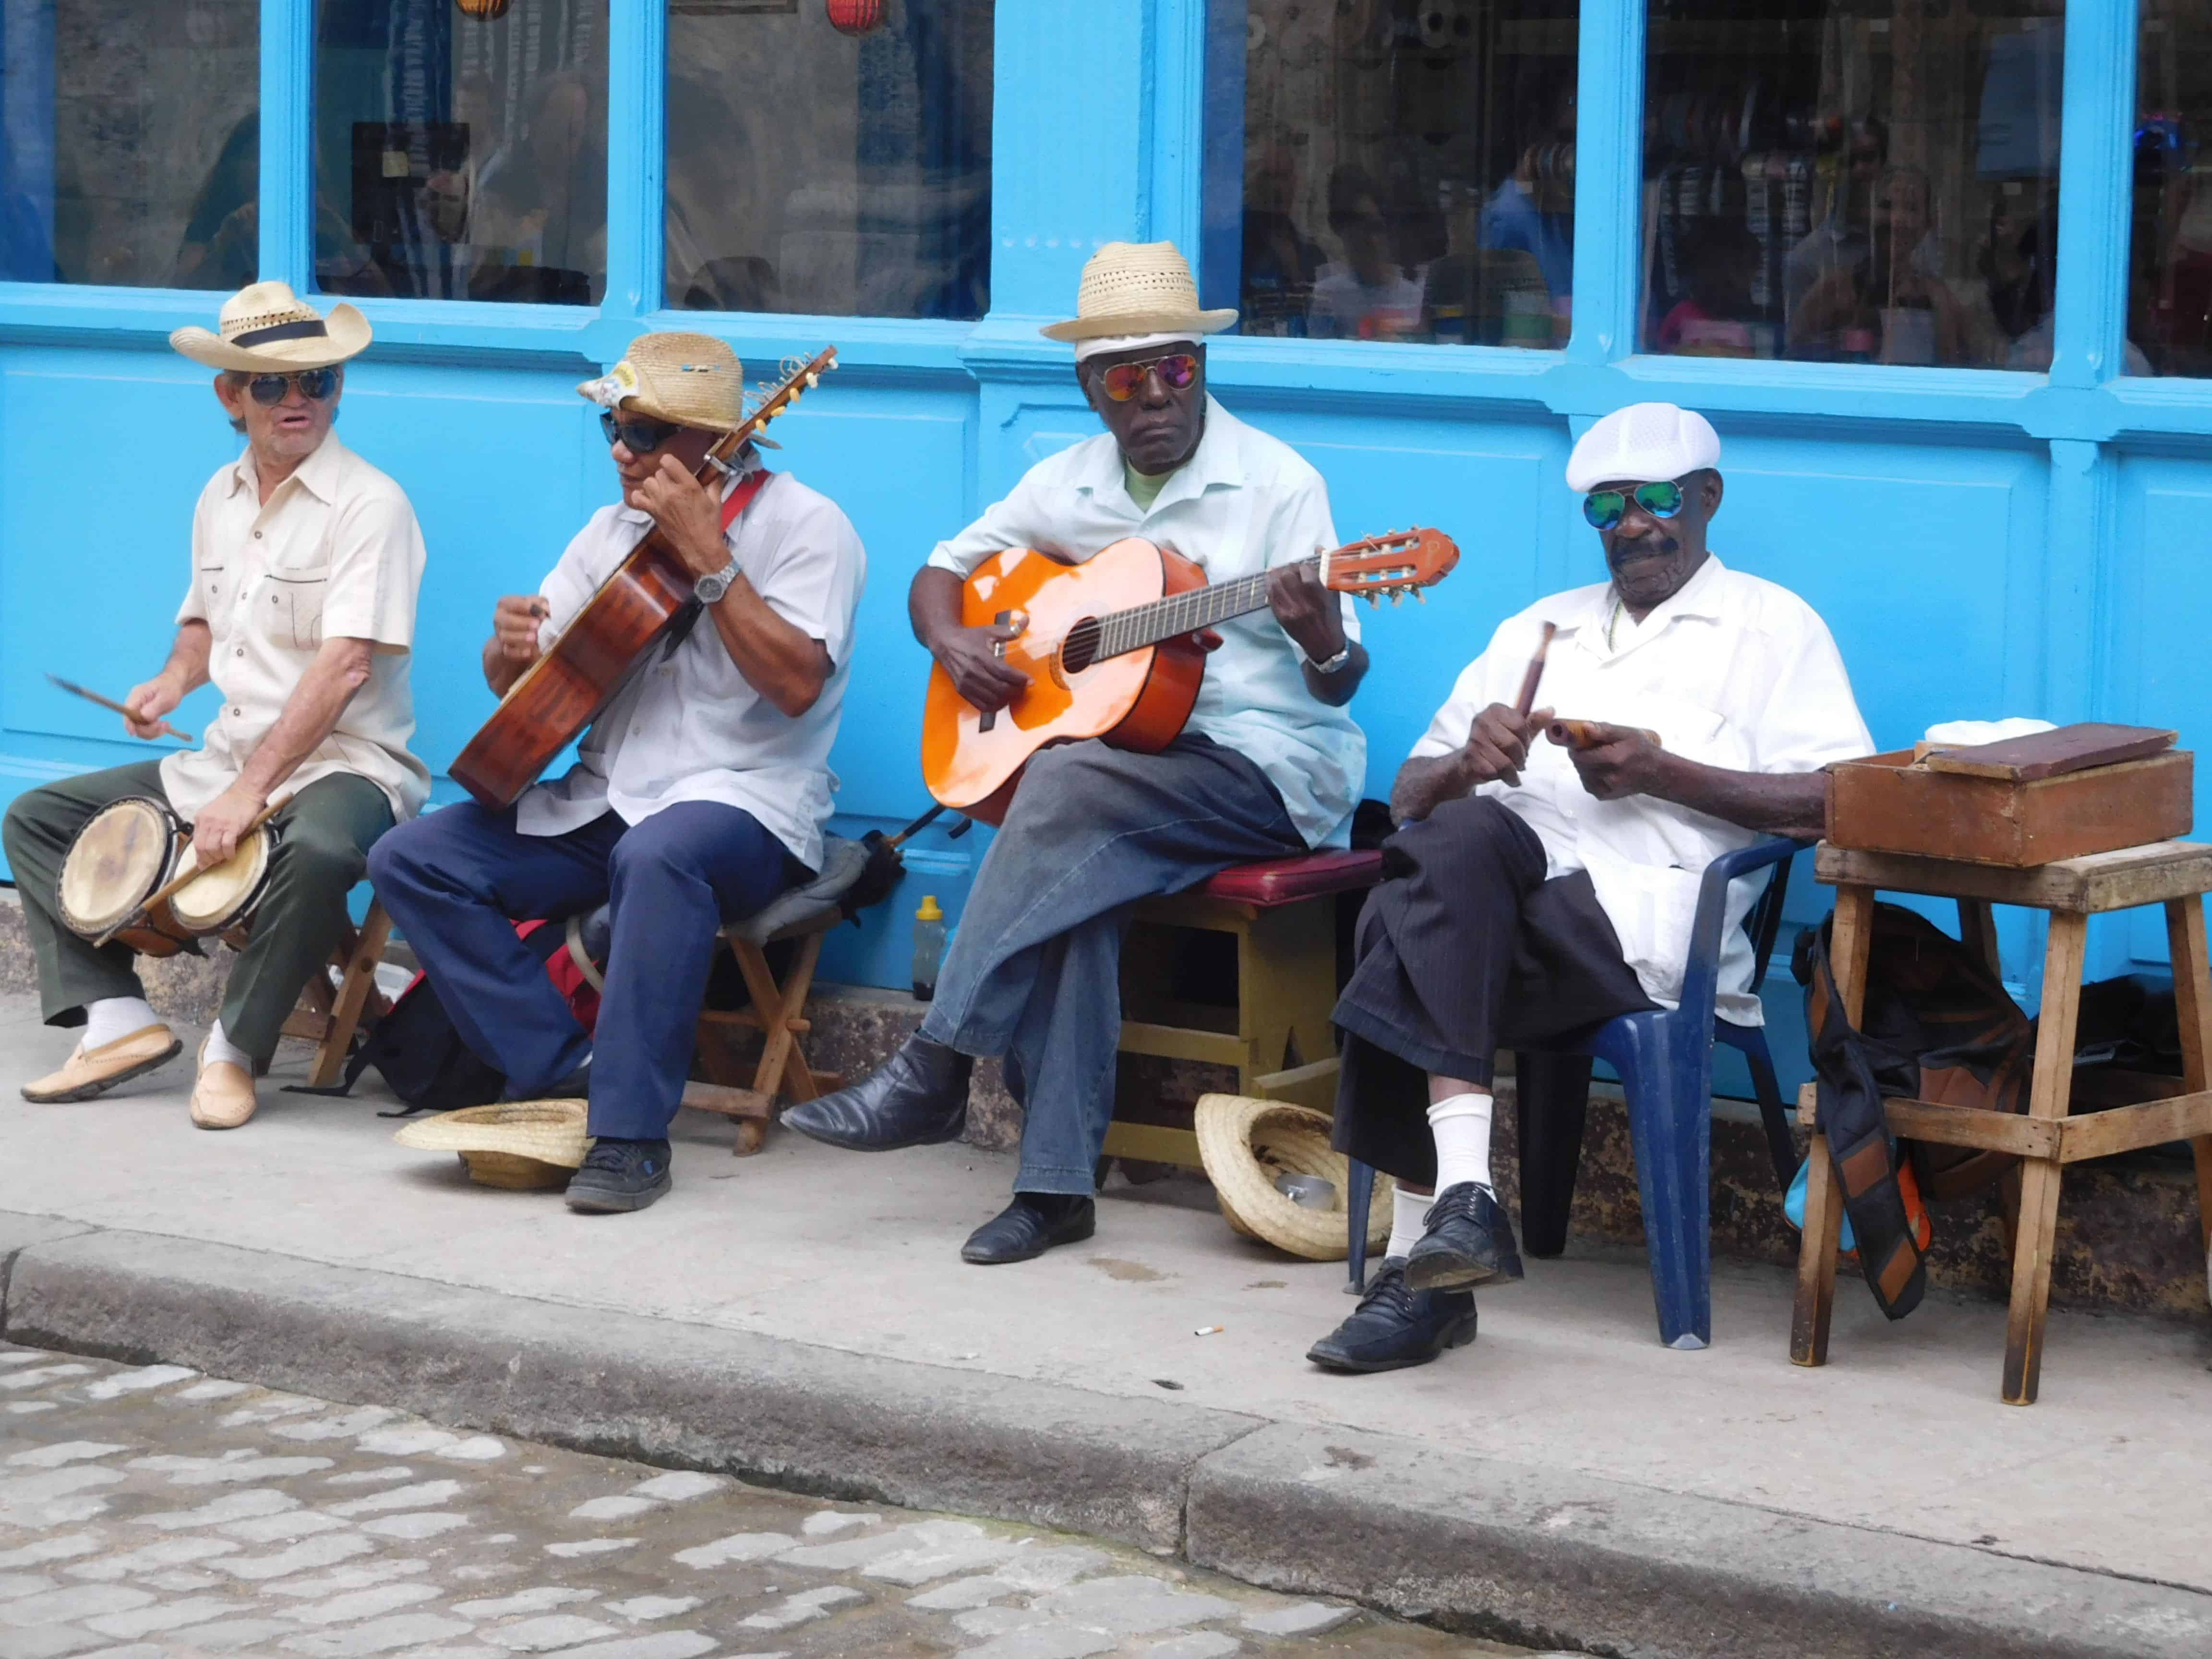 cuban musicians in old havana